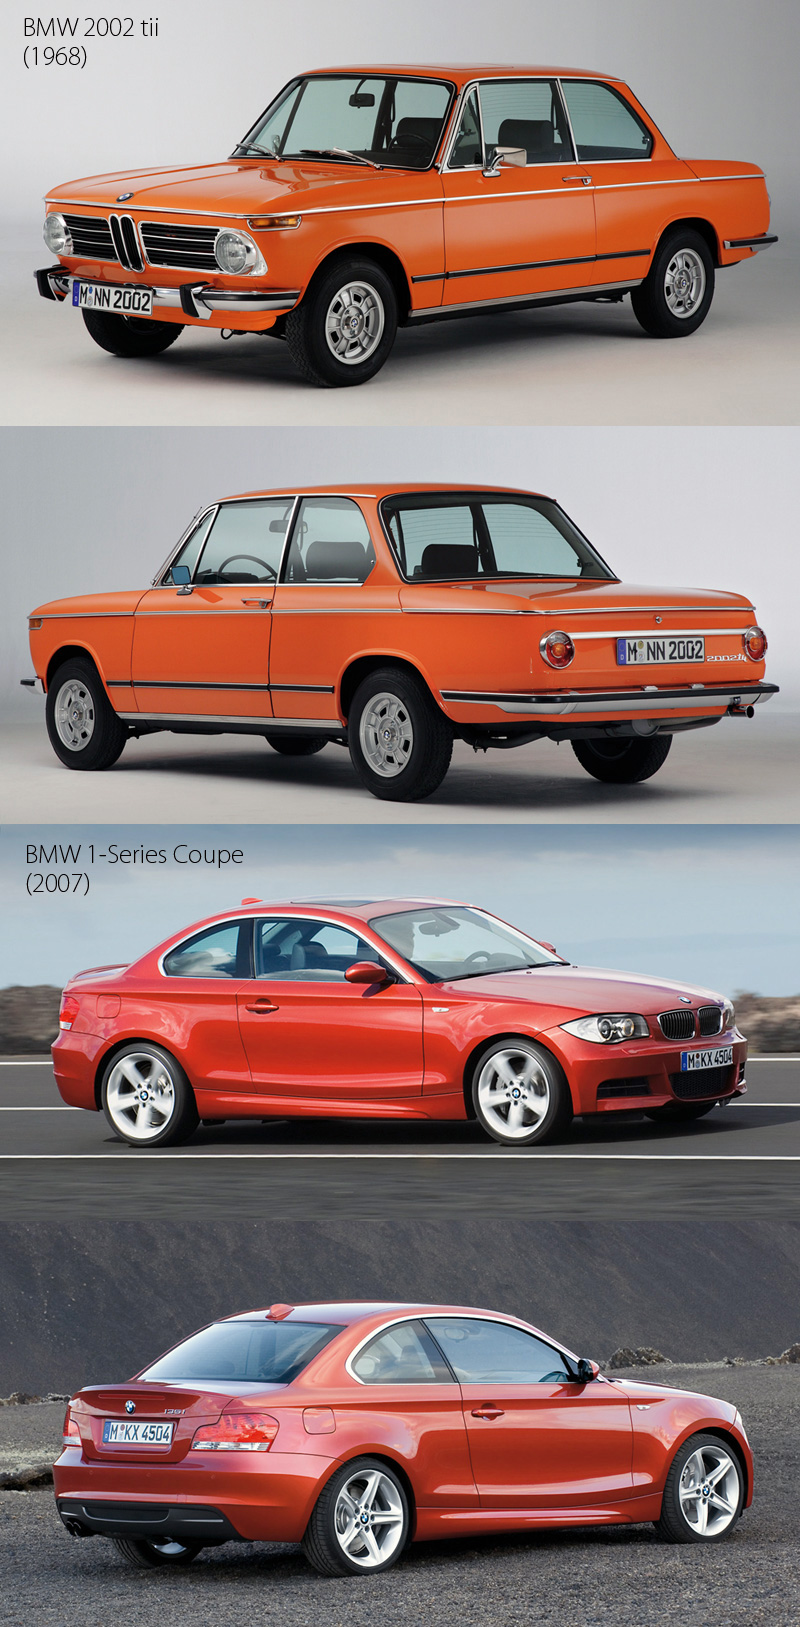 BMW_2002_1_Series_Coupe